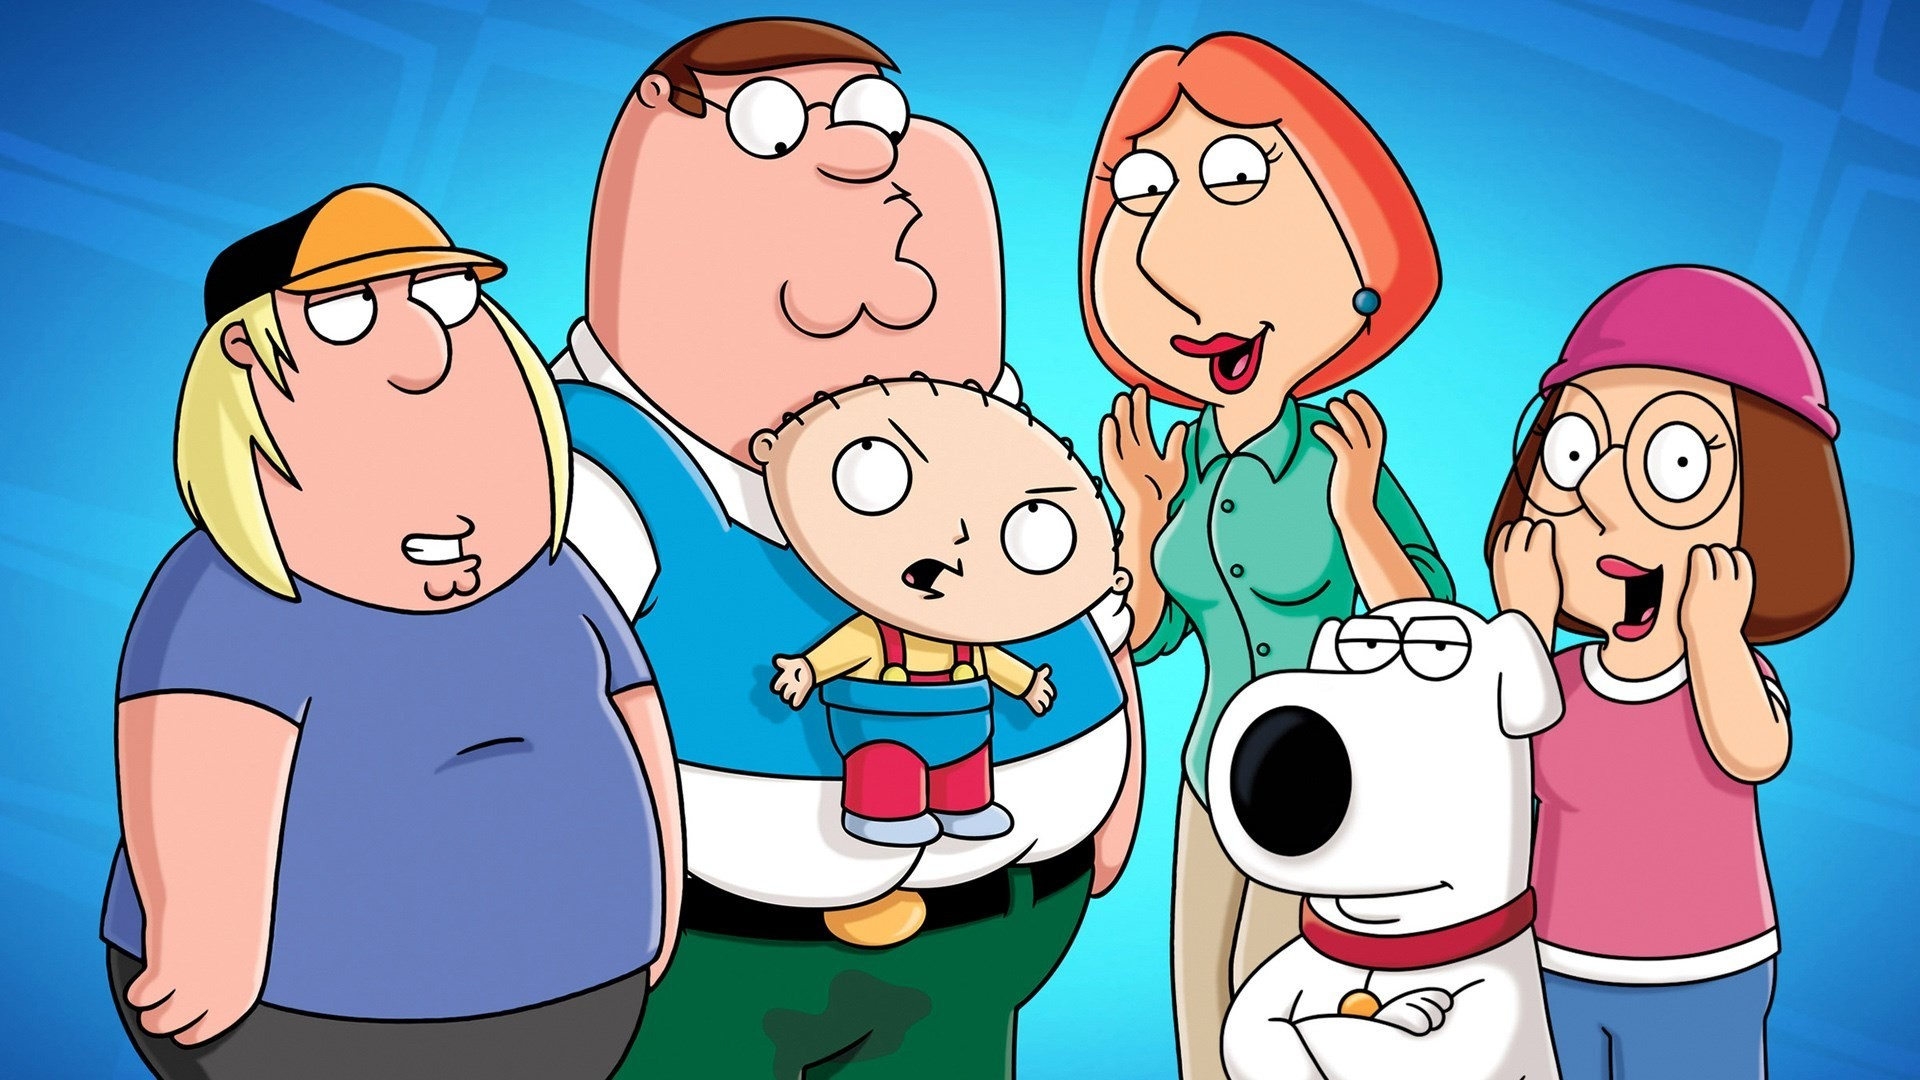 1920x1080  free computer wallpaper for family guy - family guy category ·  Download · Preview wallpaper peter griffin, family guy ...